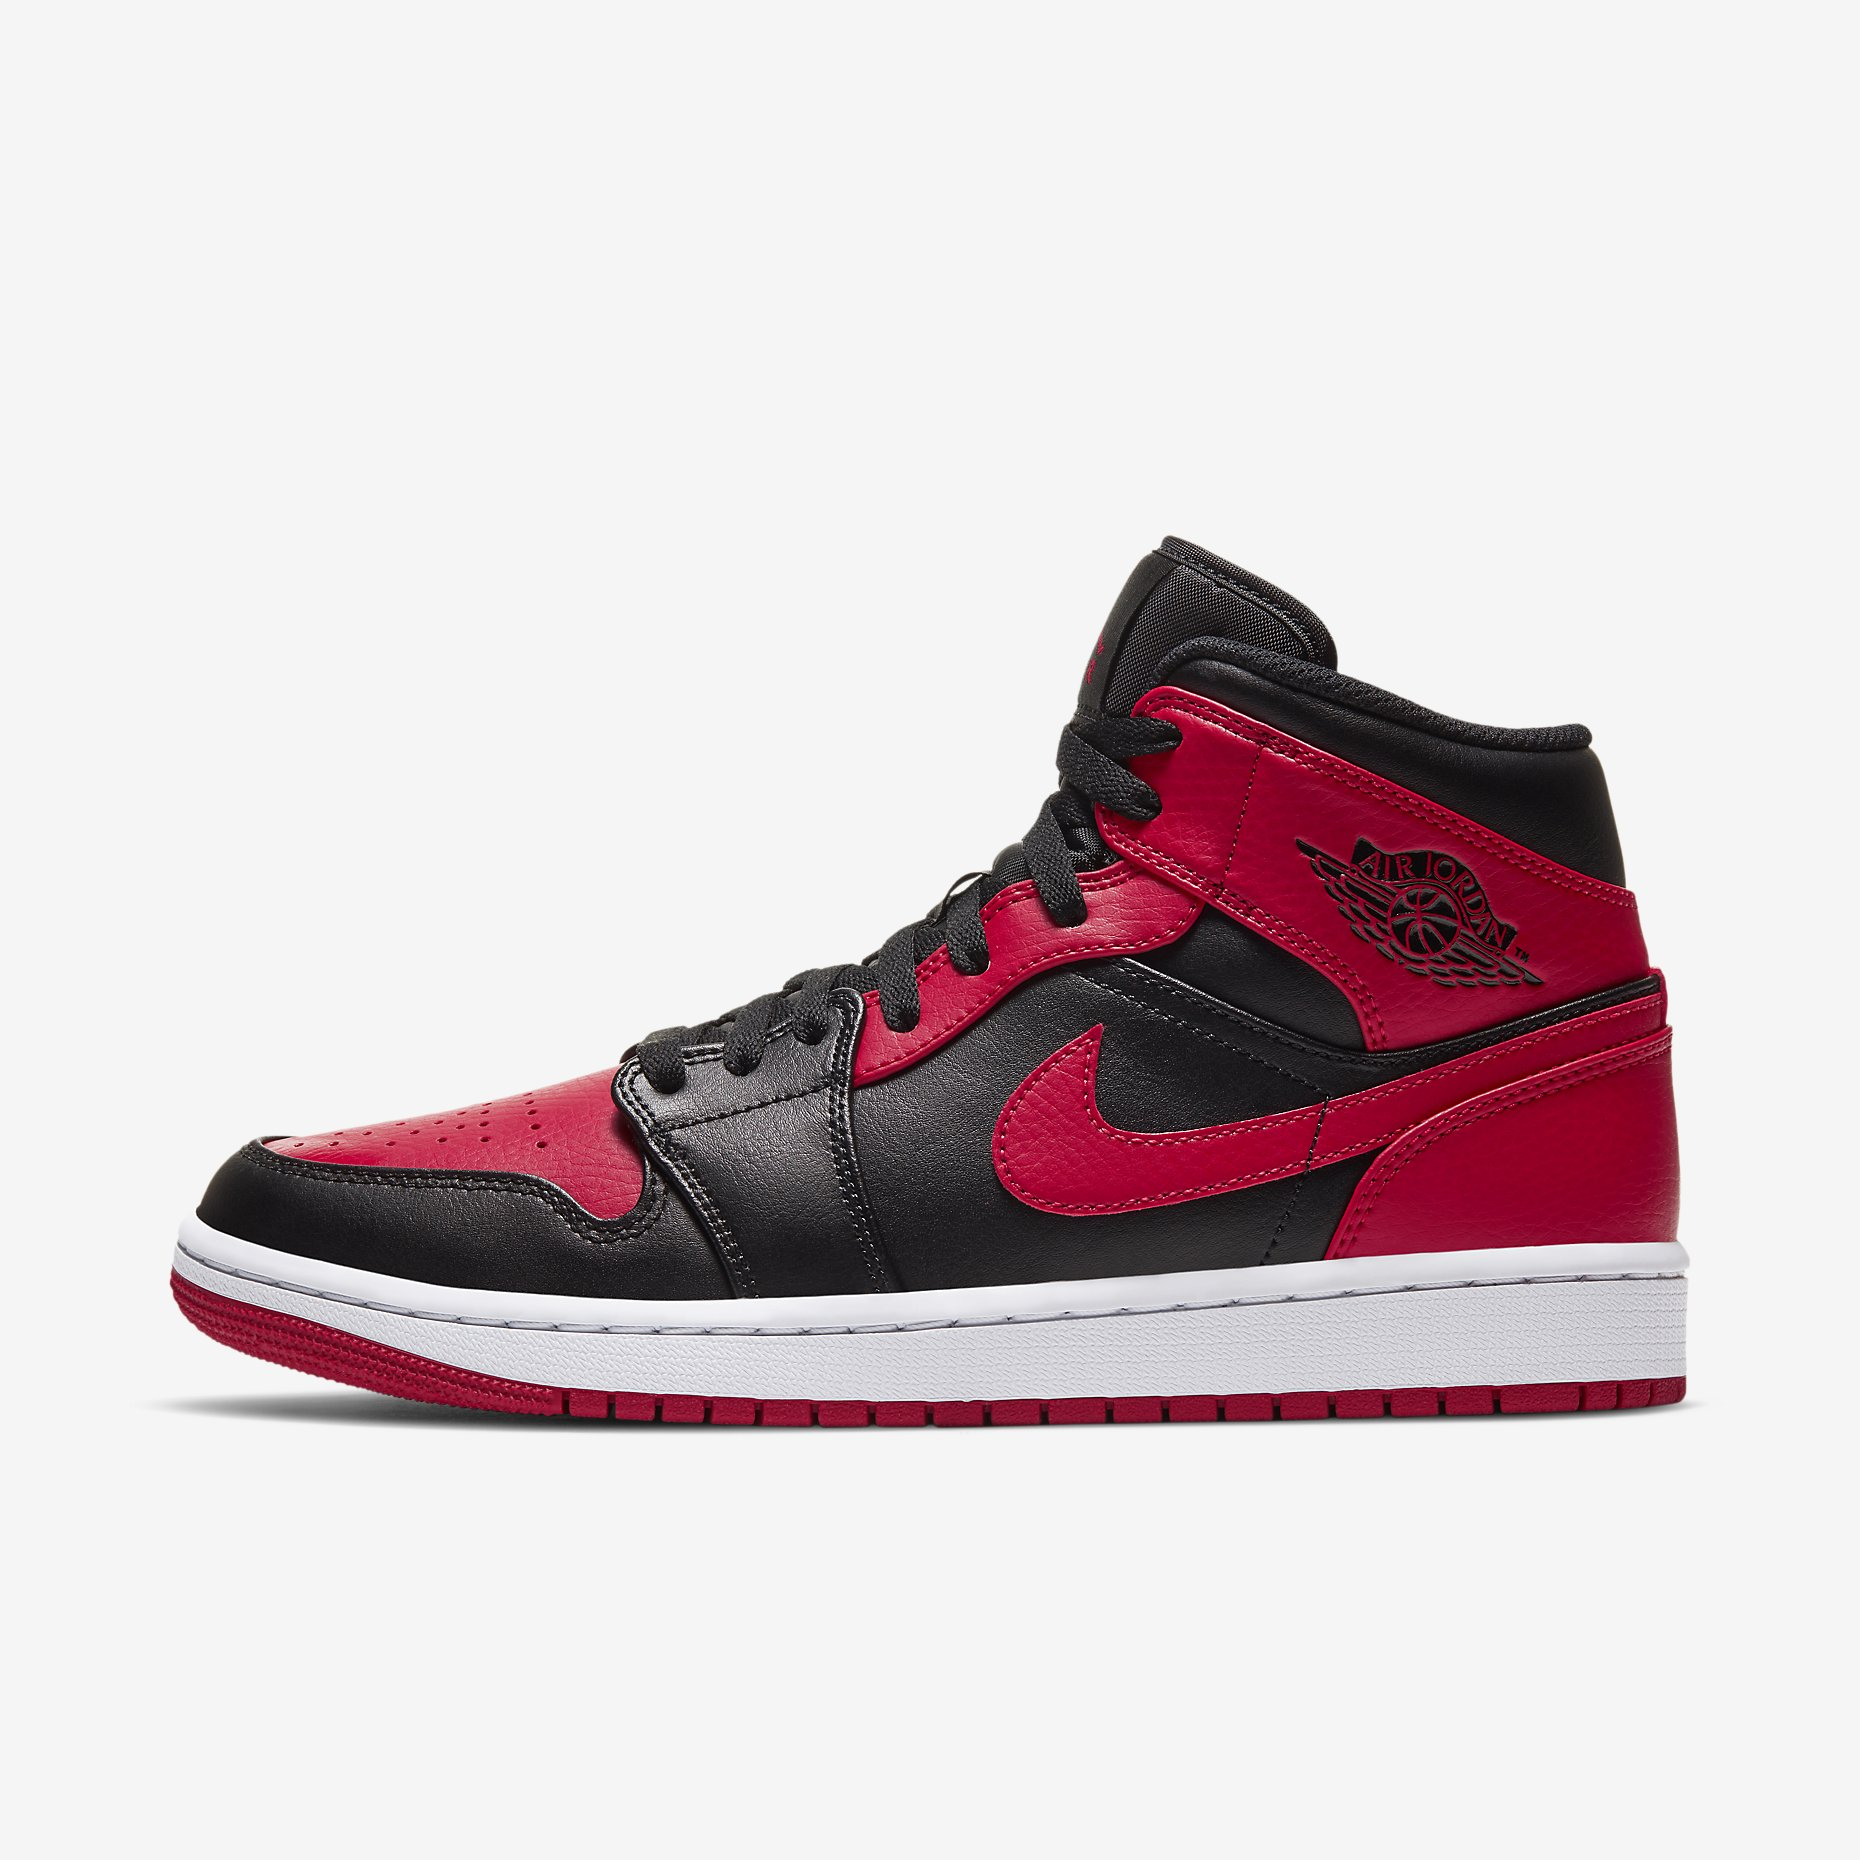 Air Jordan 1 Mid 'Bred' 2020}